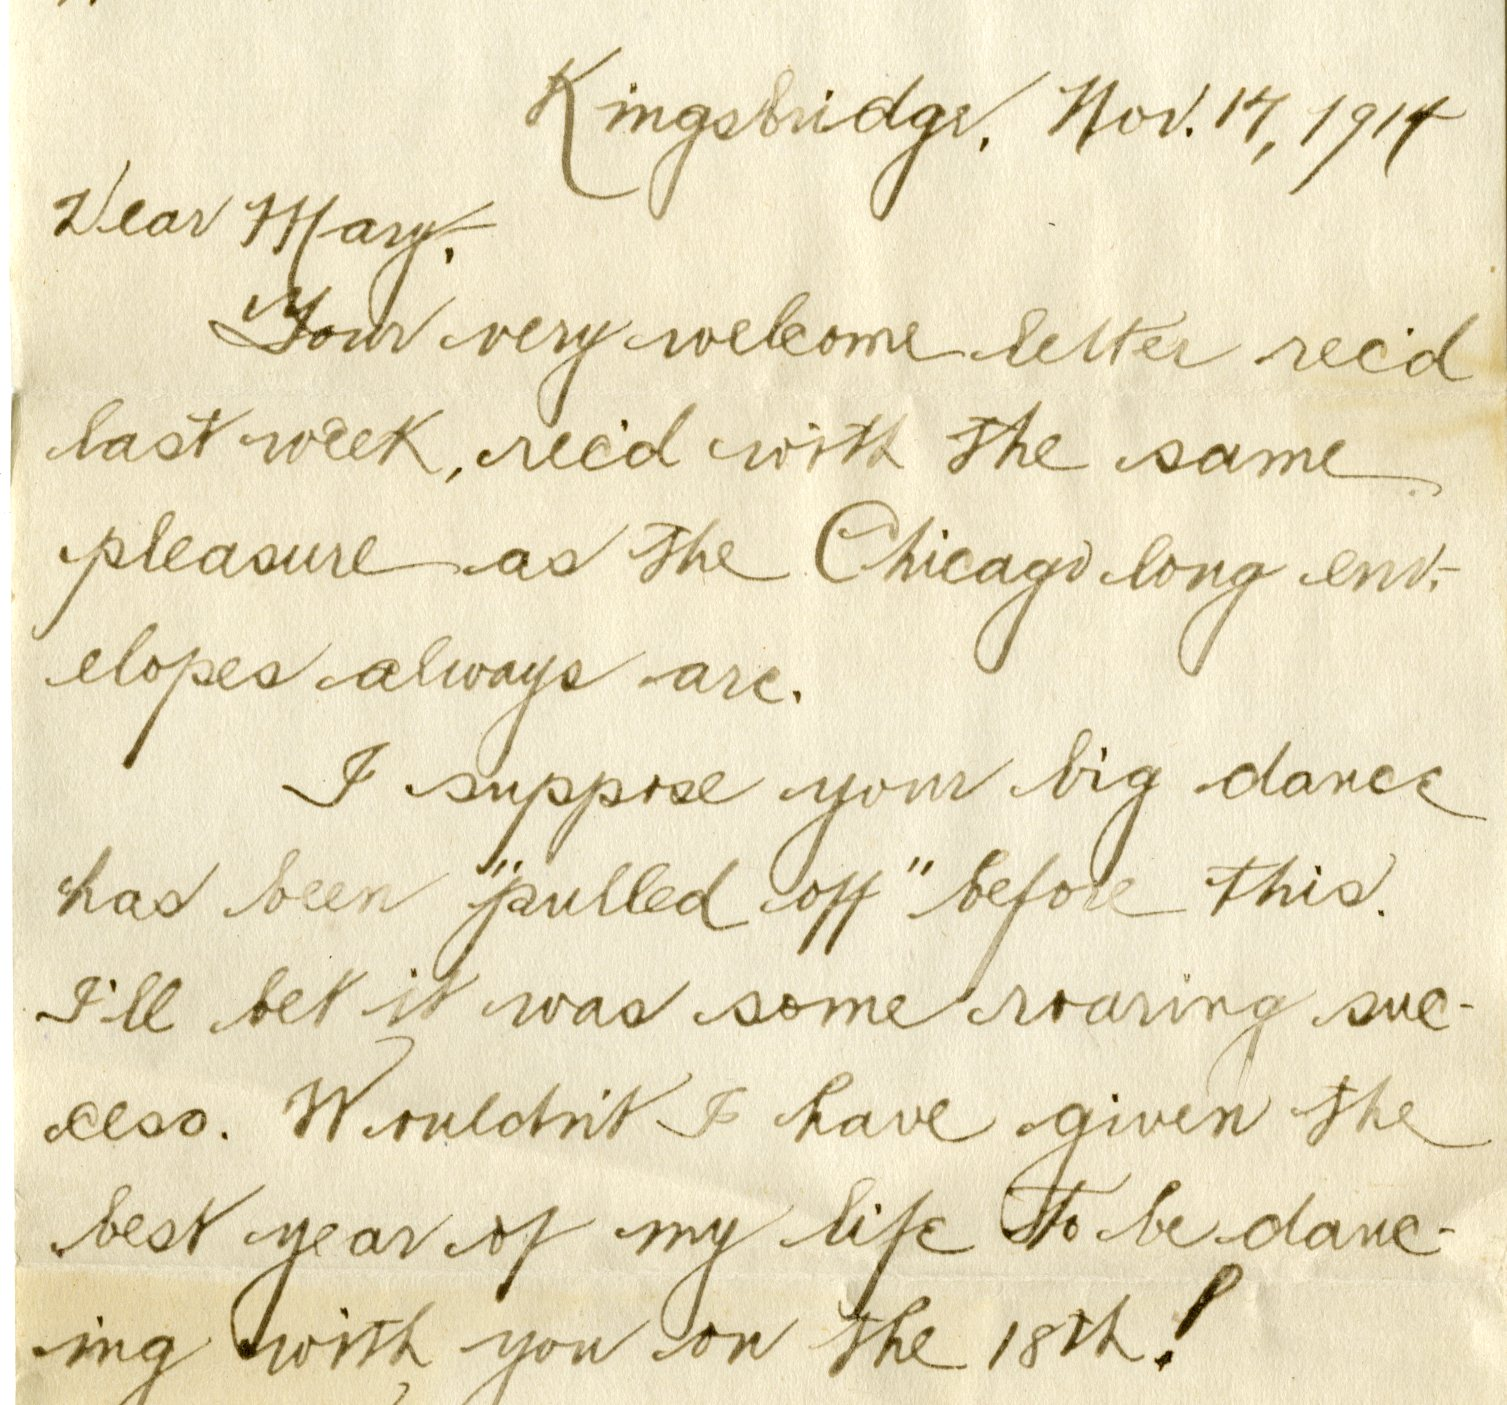 Excerpt from a letter sent to Mary Frances Griffin